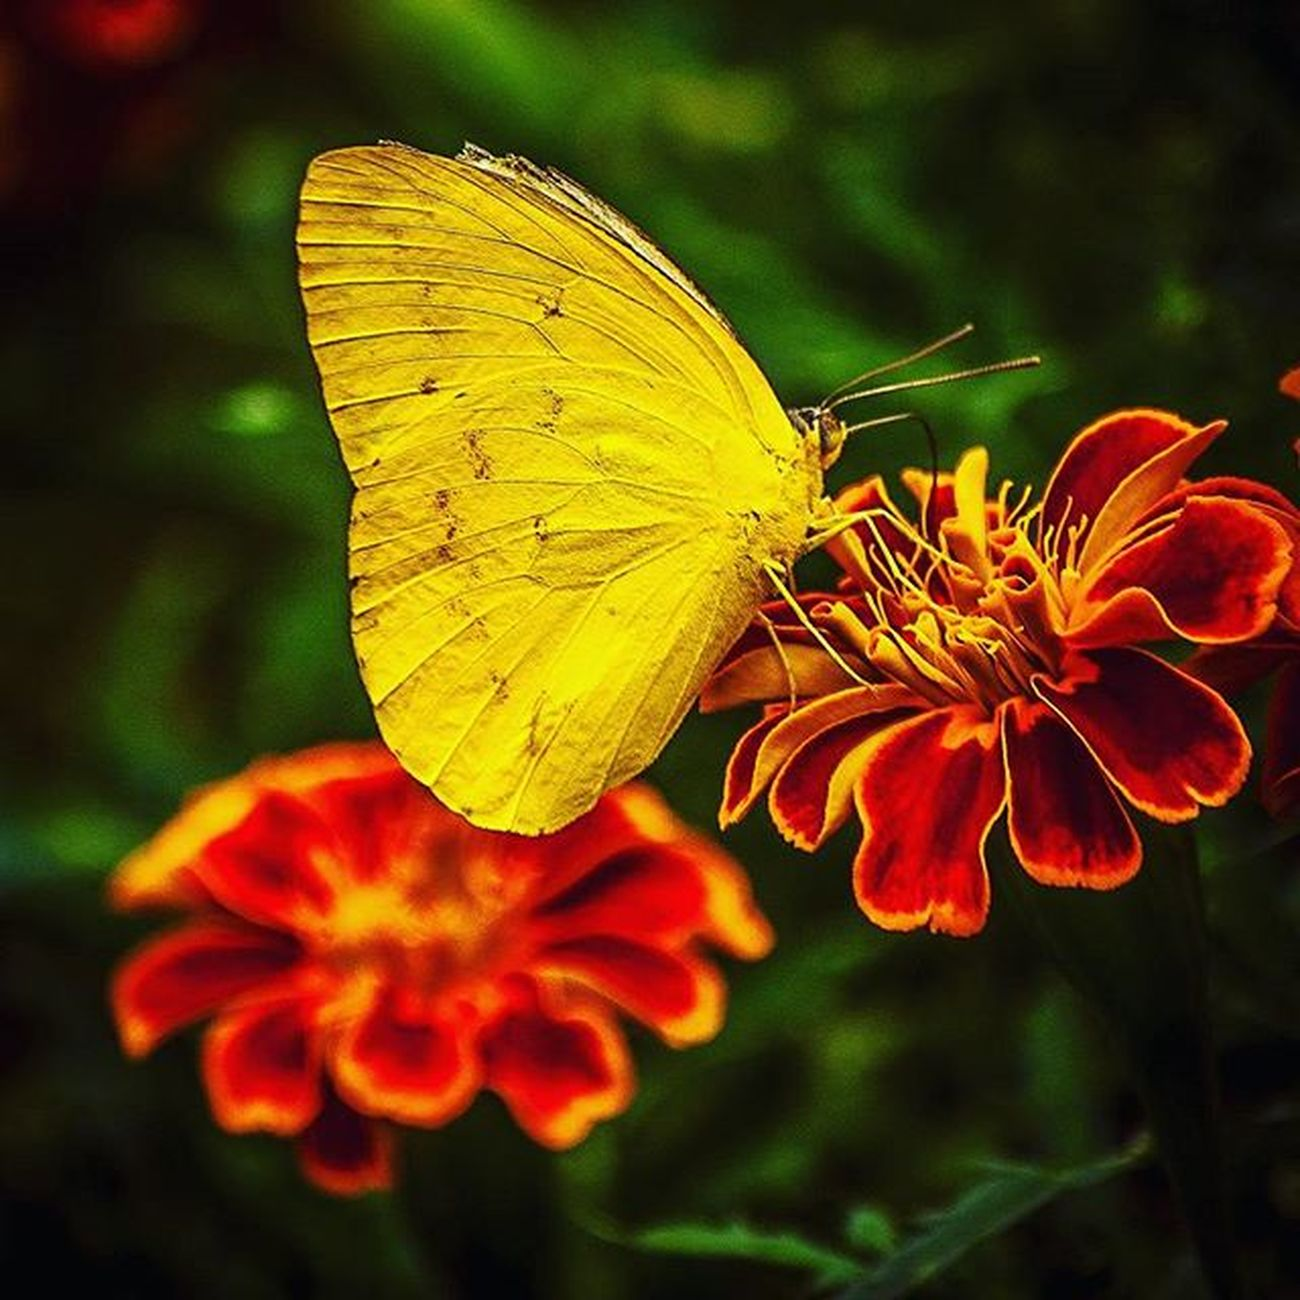 The Beauty of Nature . Flowergarden Yellowbutterfly Honeylover Naturegram Naturelover Photocontest Instacapture Instagoo Photo4Follow Instadaily Doubletap .